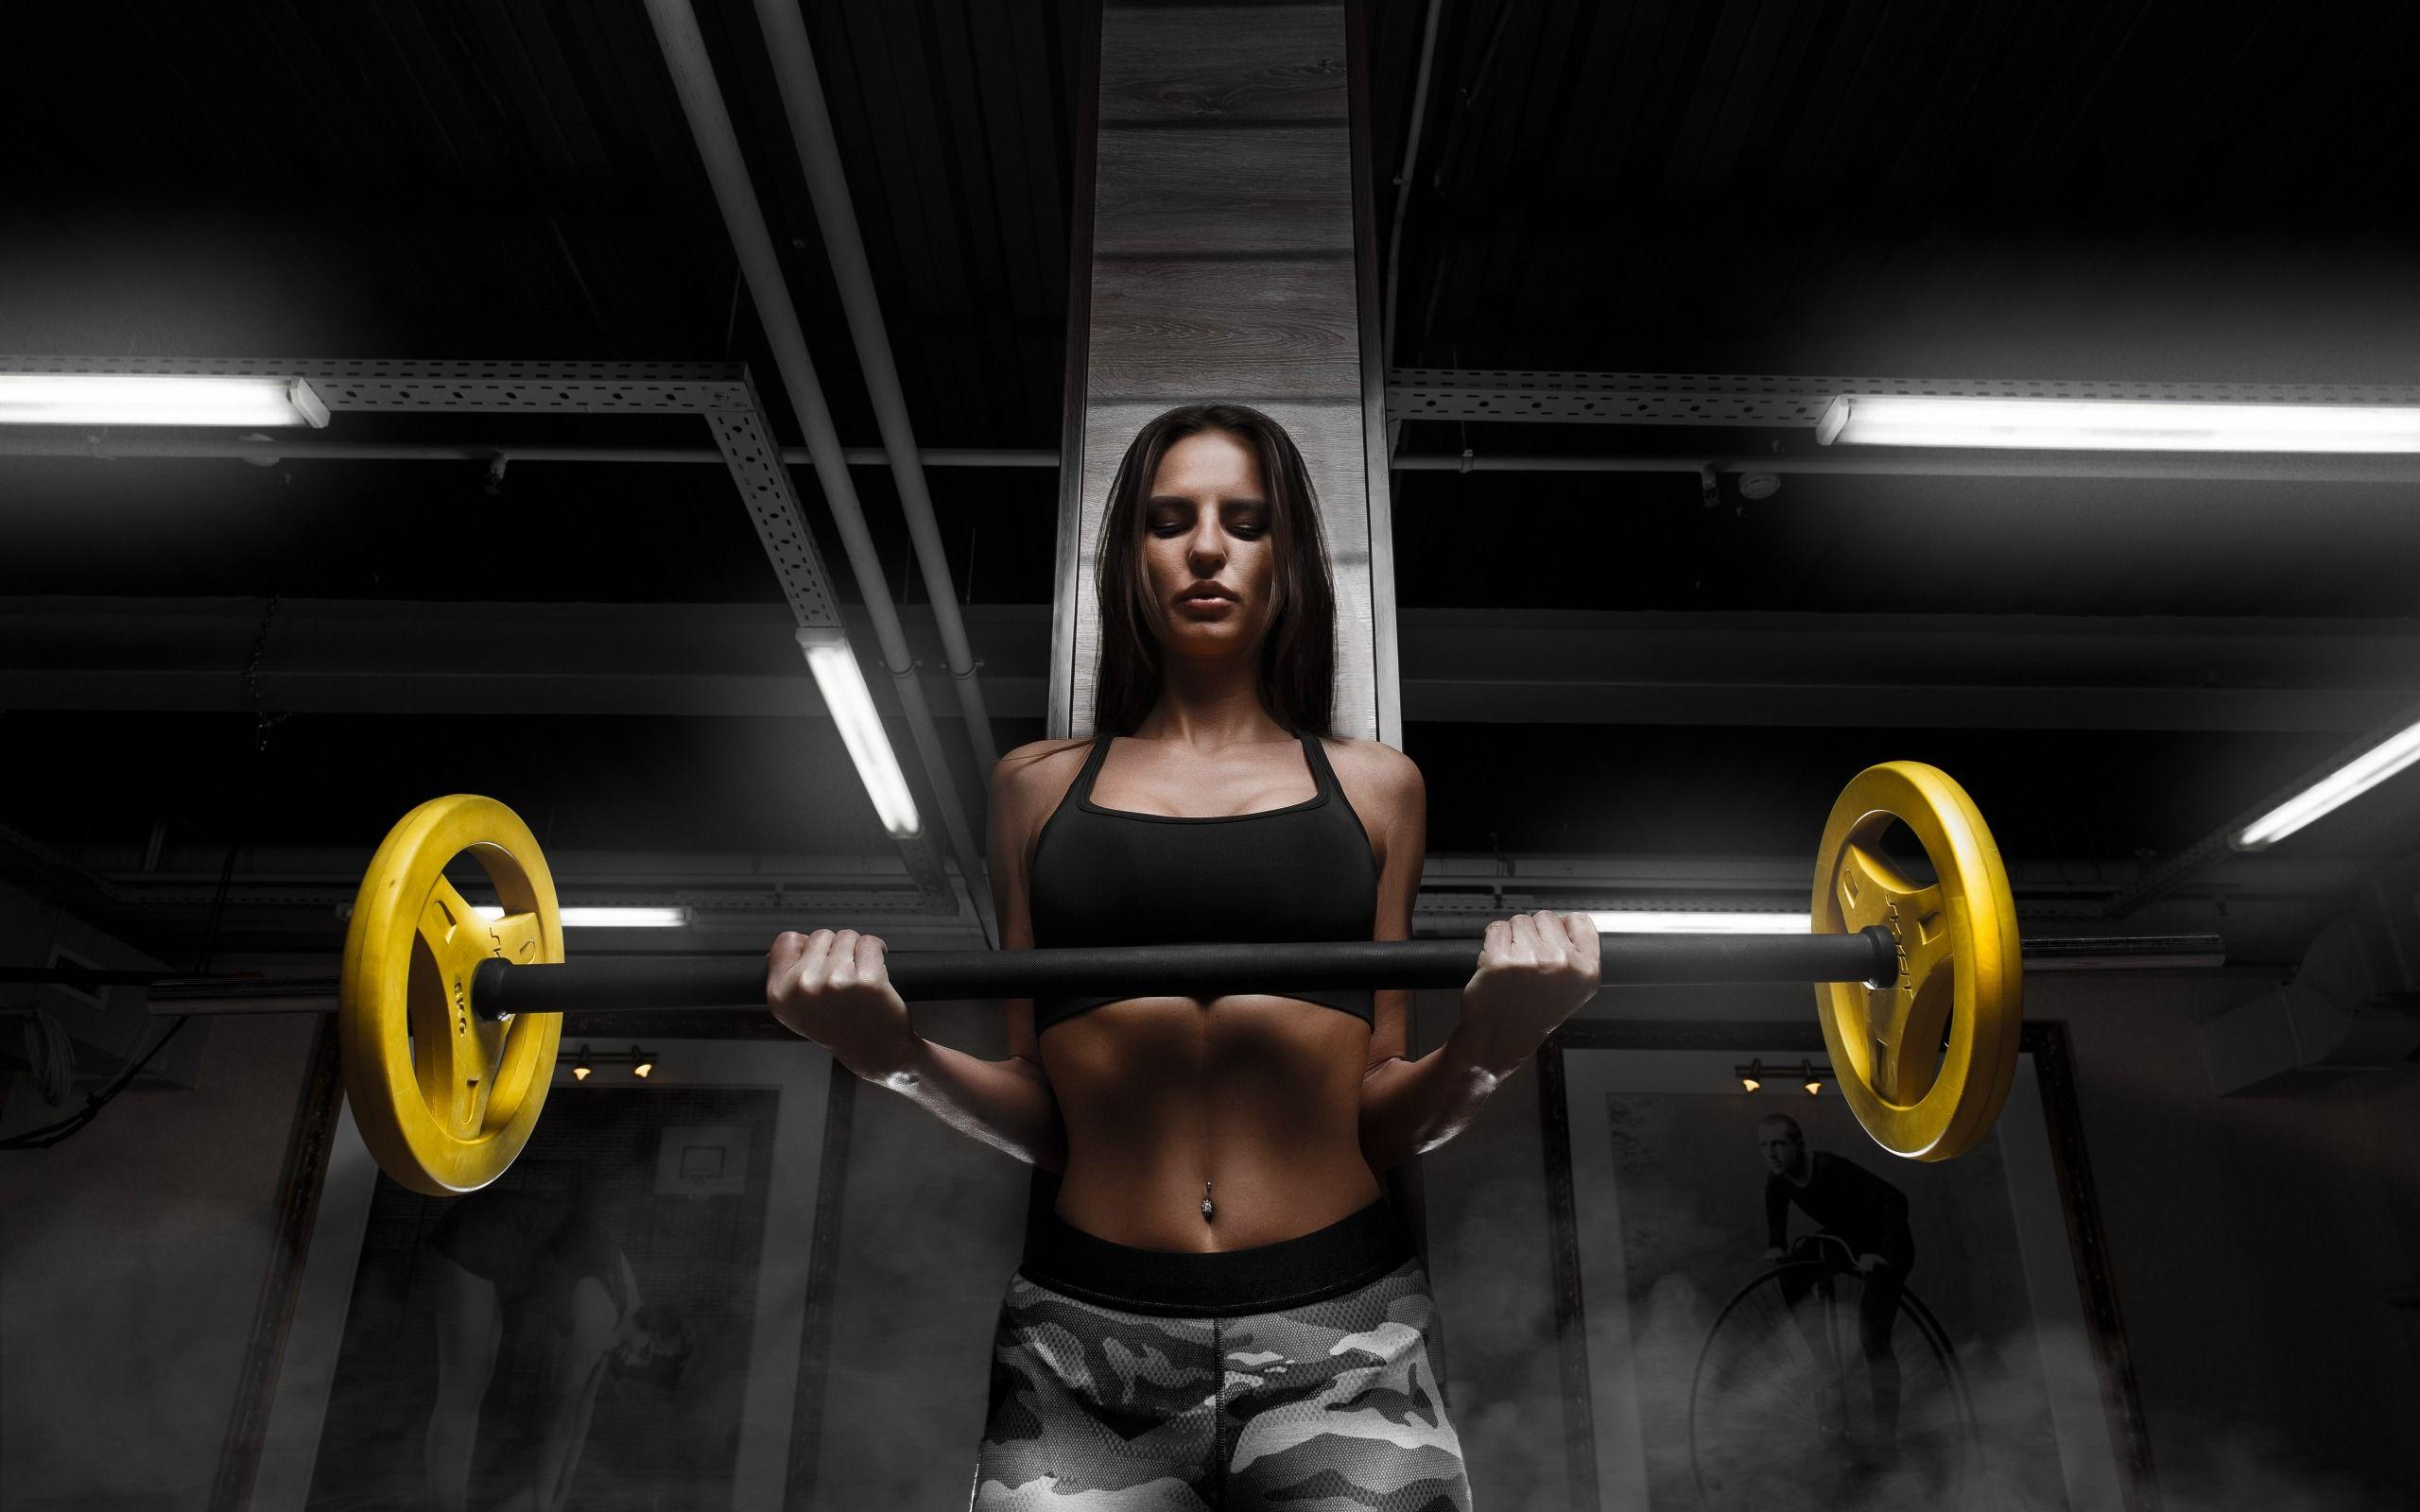 Download wallpapers gym, fitness, barbell, workout, Sports girl ...